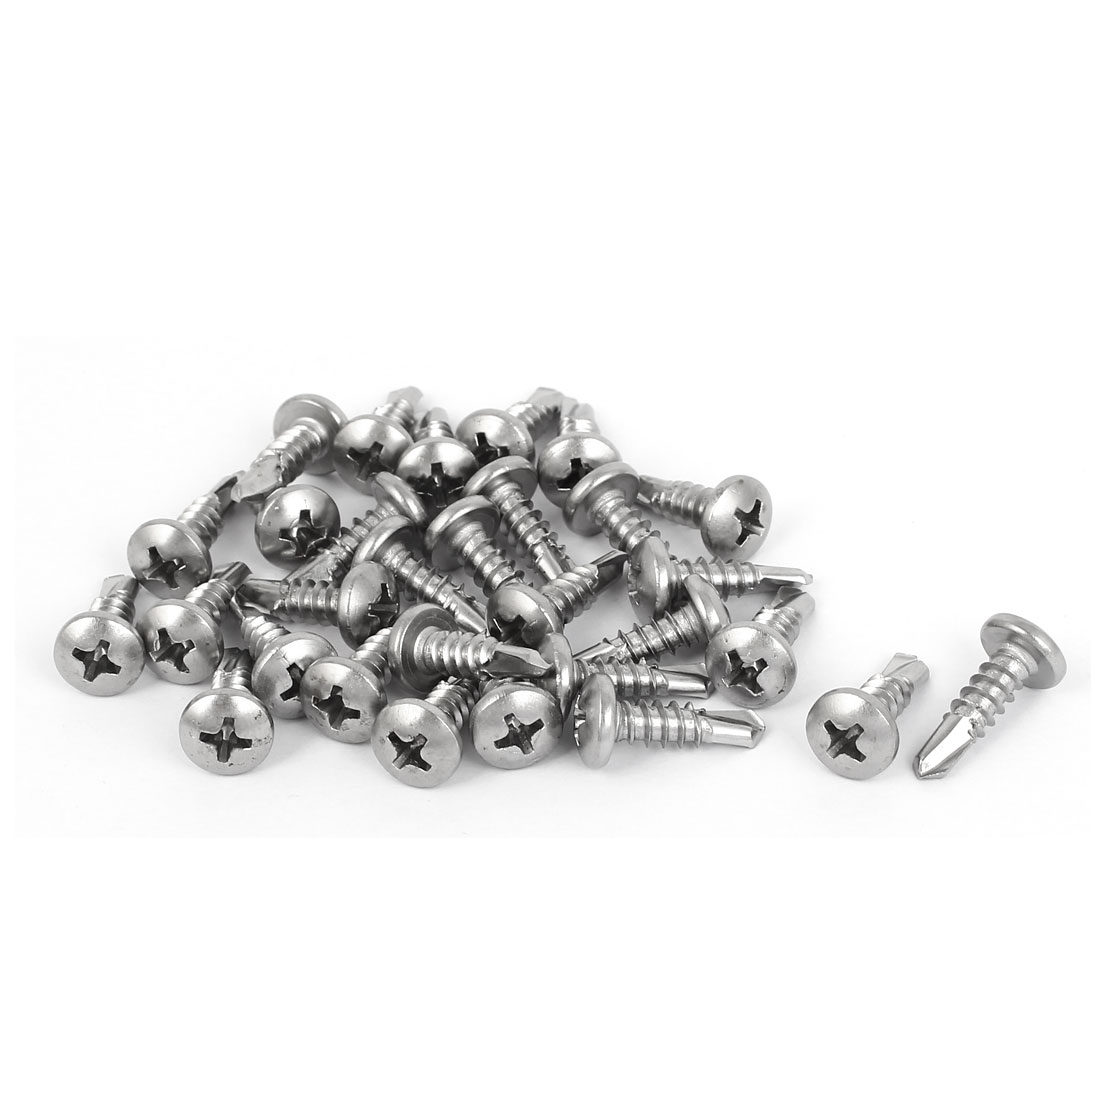 M4.8x16mm #10 Male Thread Phillips Pan Head Self Tapping Drilling Screws 30 Pcs